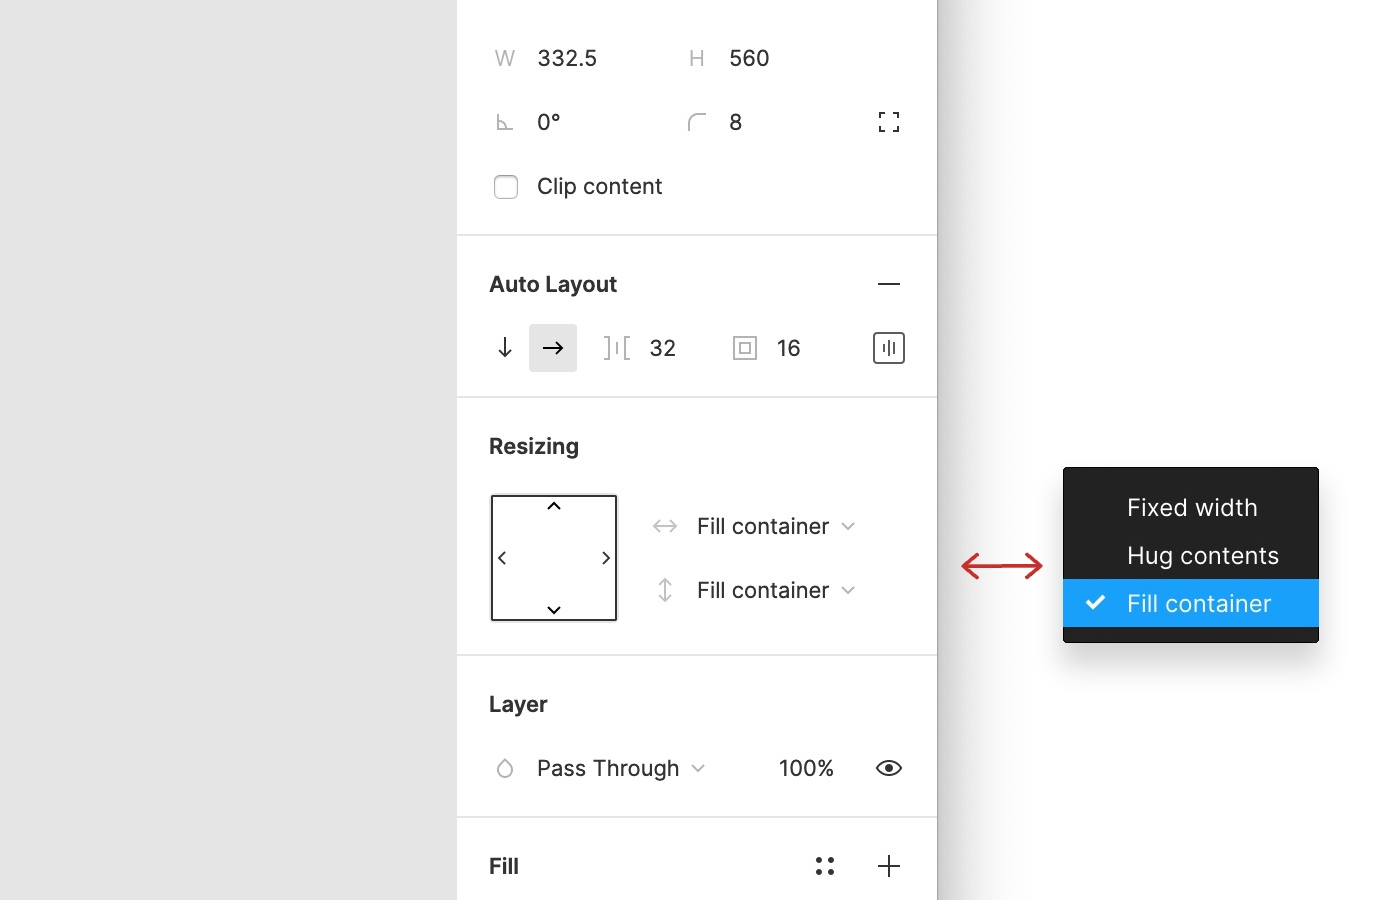 Auto Layout Figma - Redimensionar (resizing)